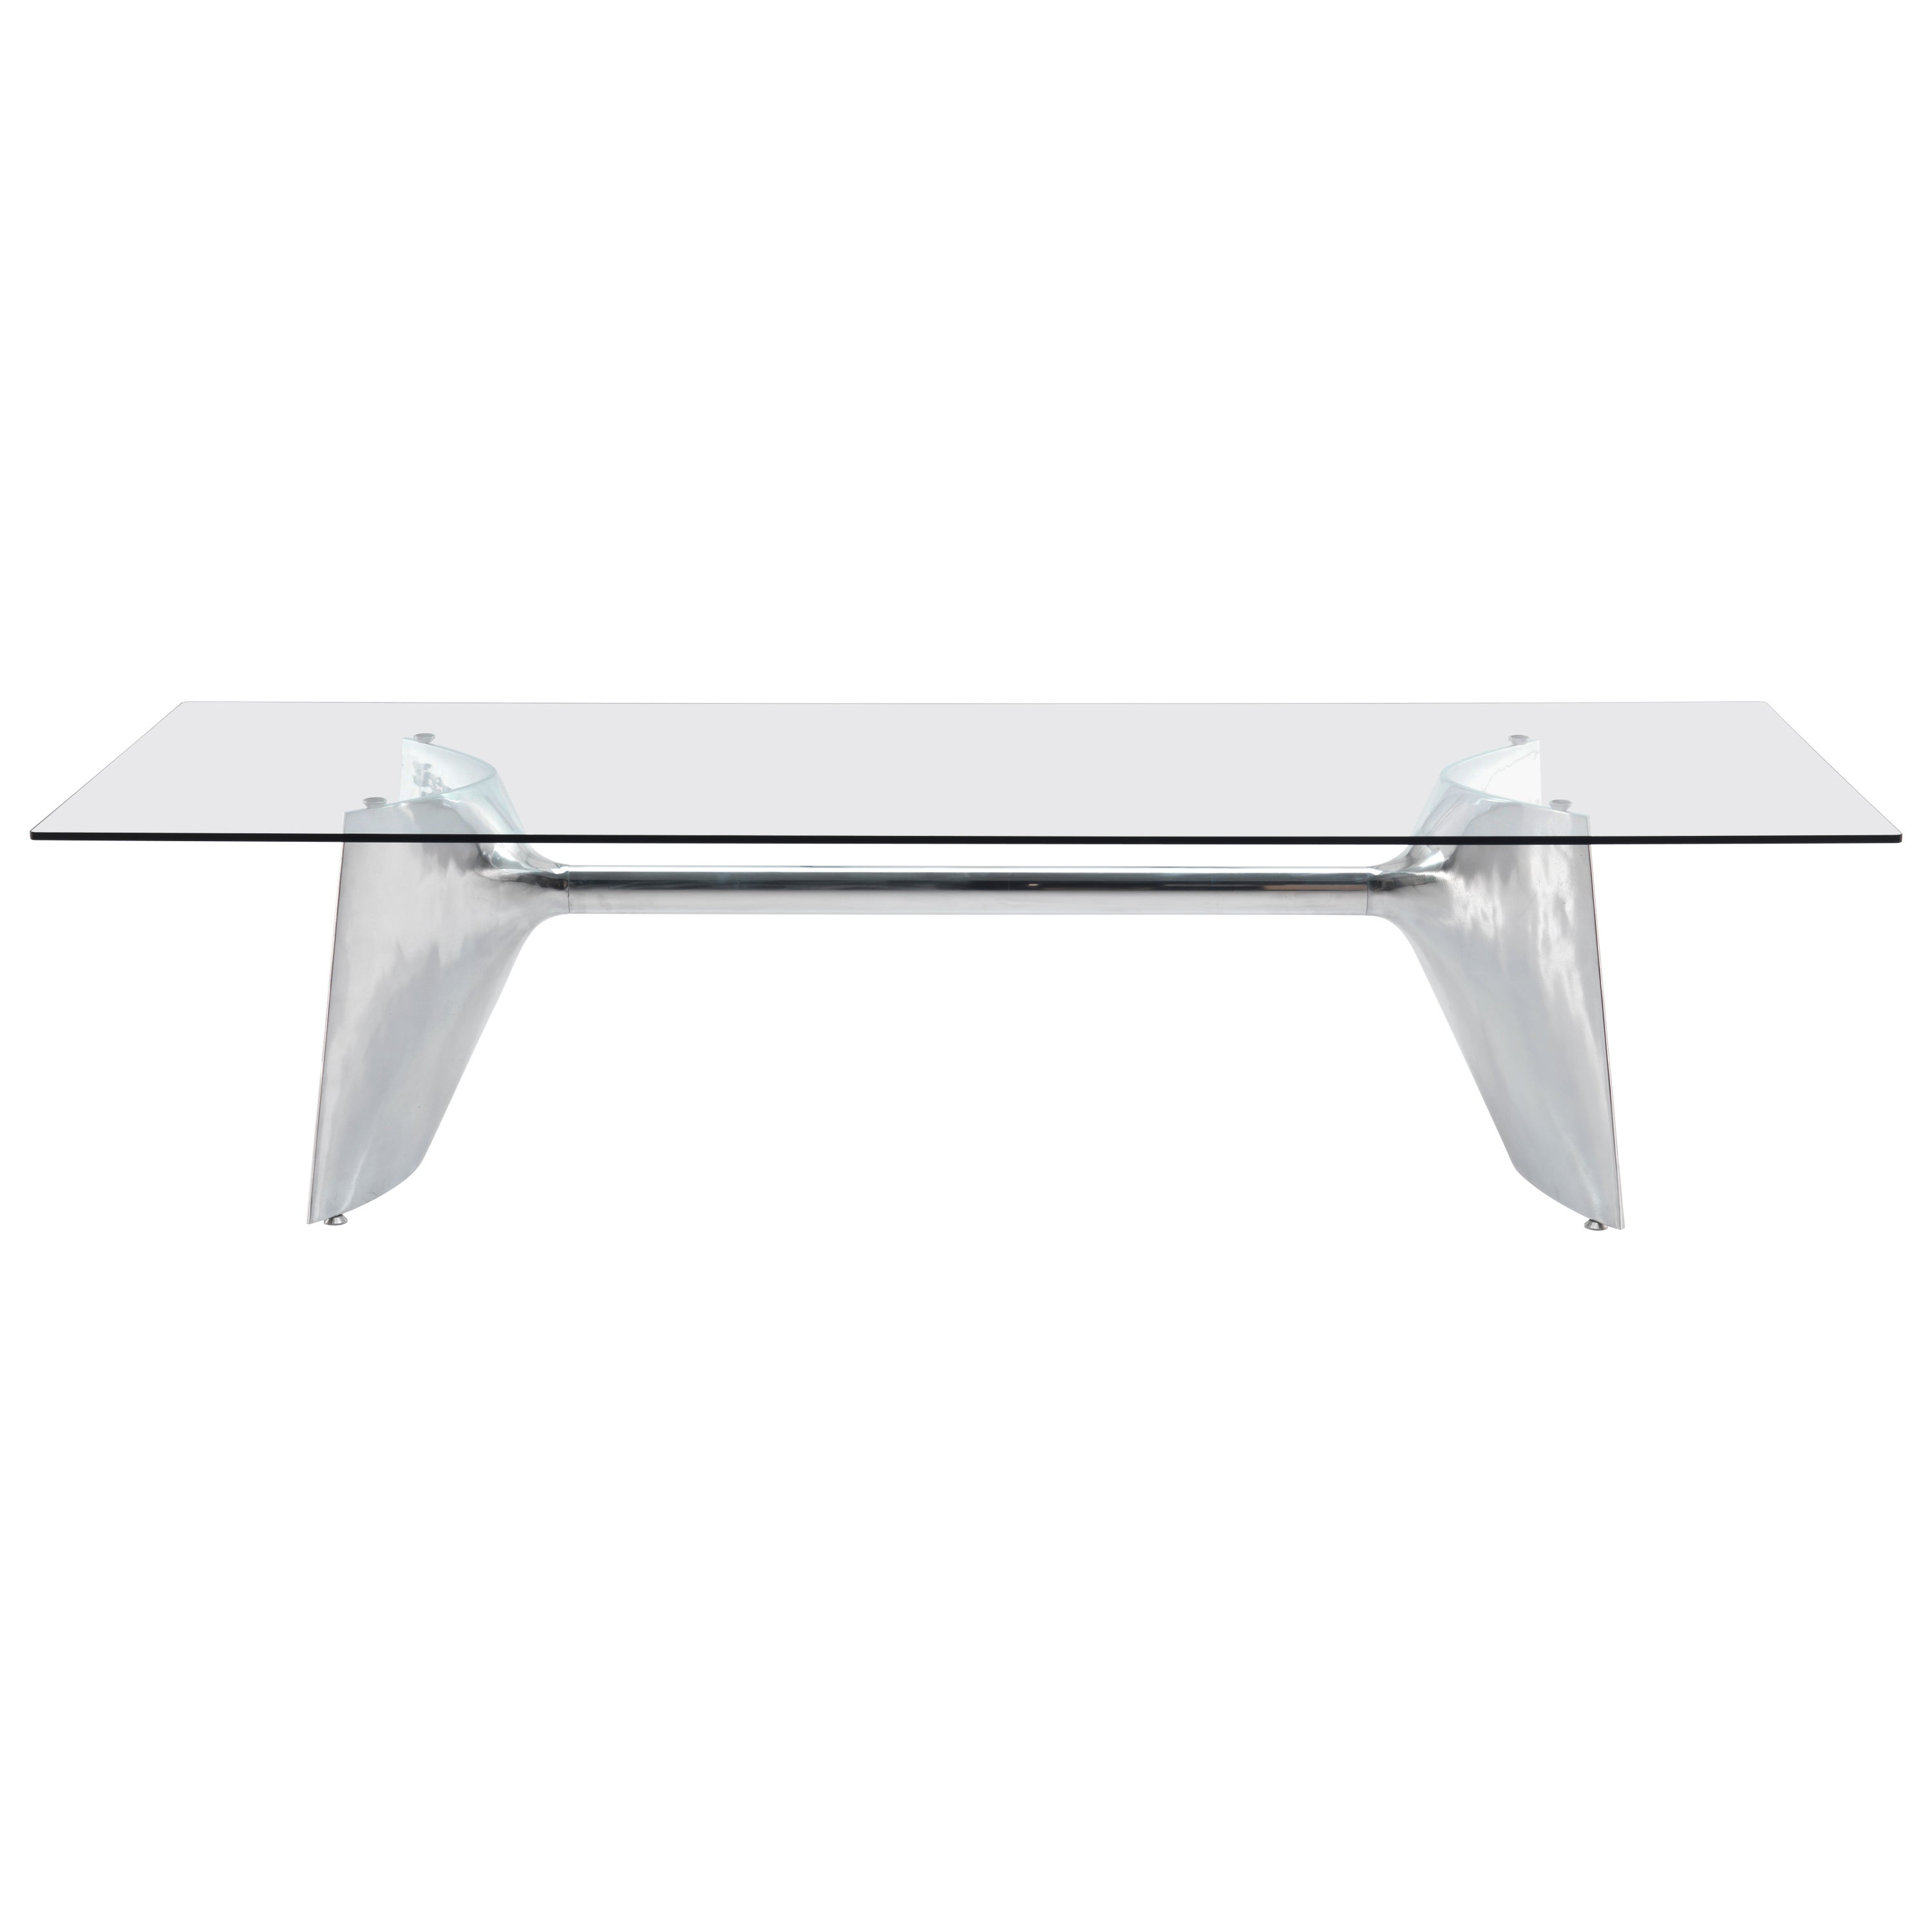 Baleri Italia Fratino High Rectangular Aluminum Table with Glass by Jeff Miller